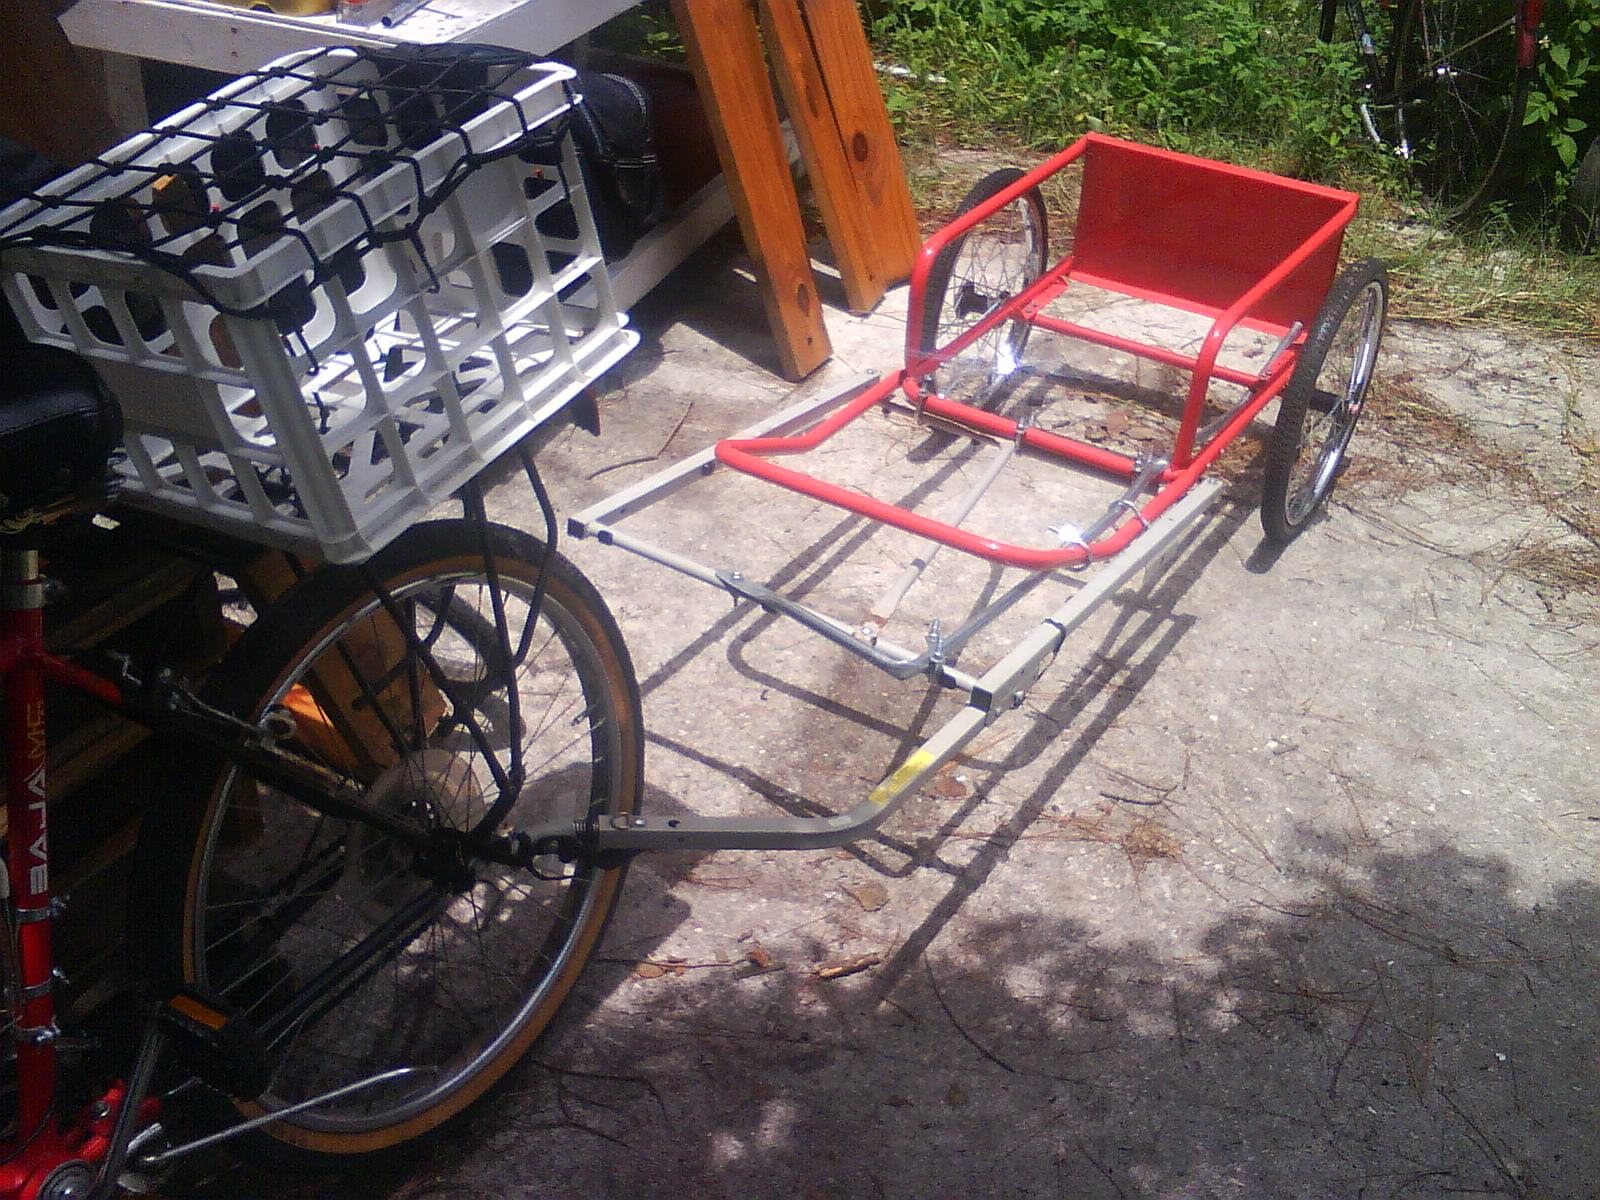 Picture of Combined Cart Bike Trailer